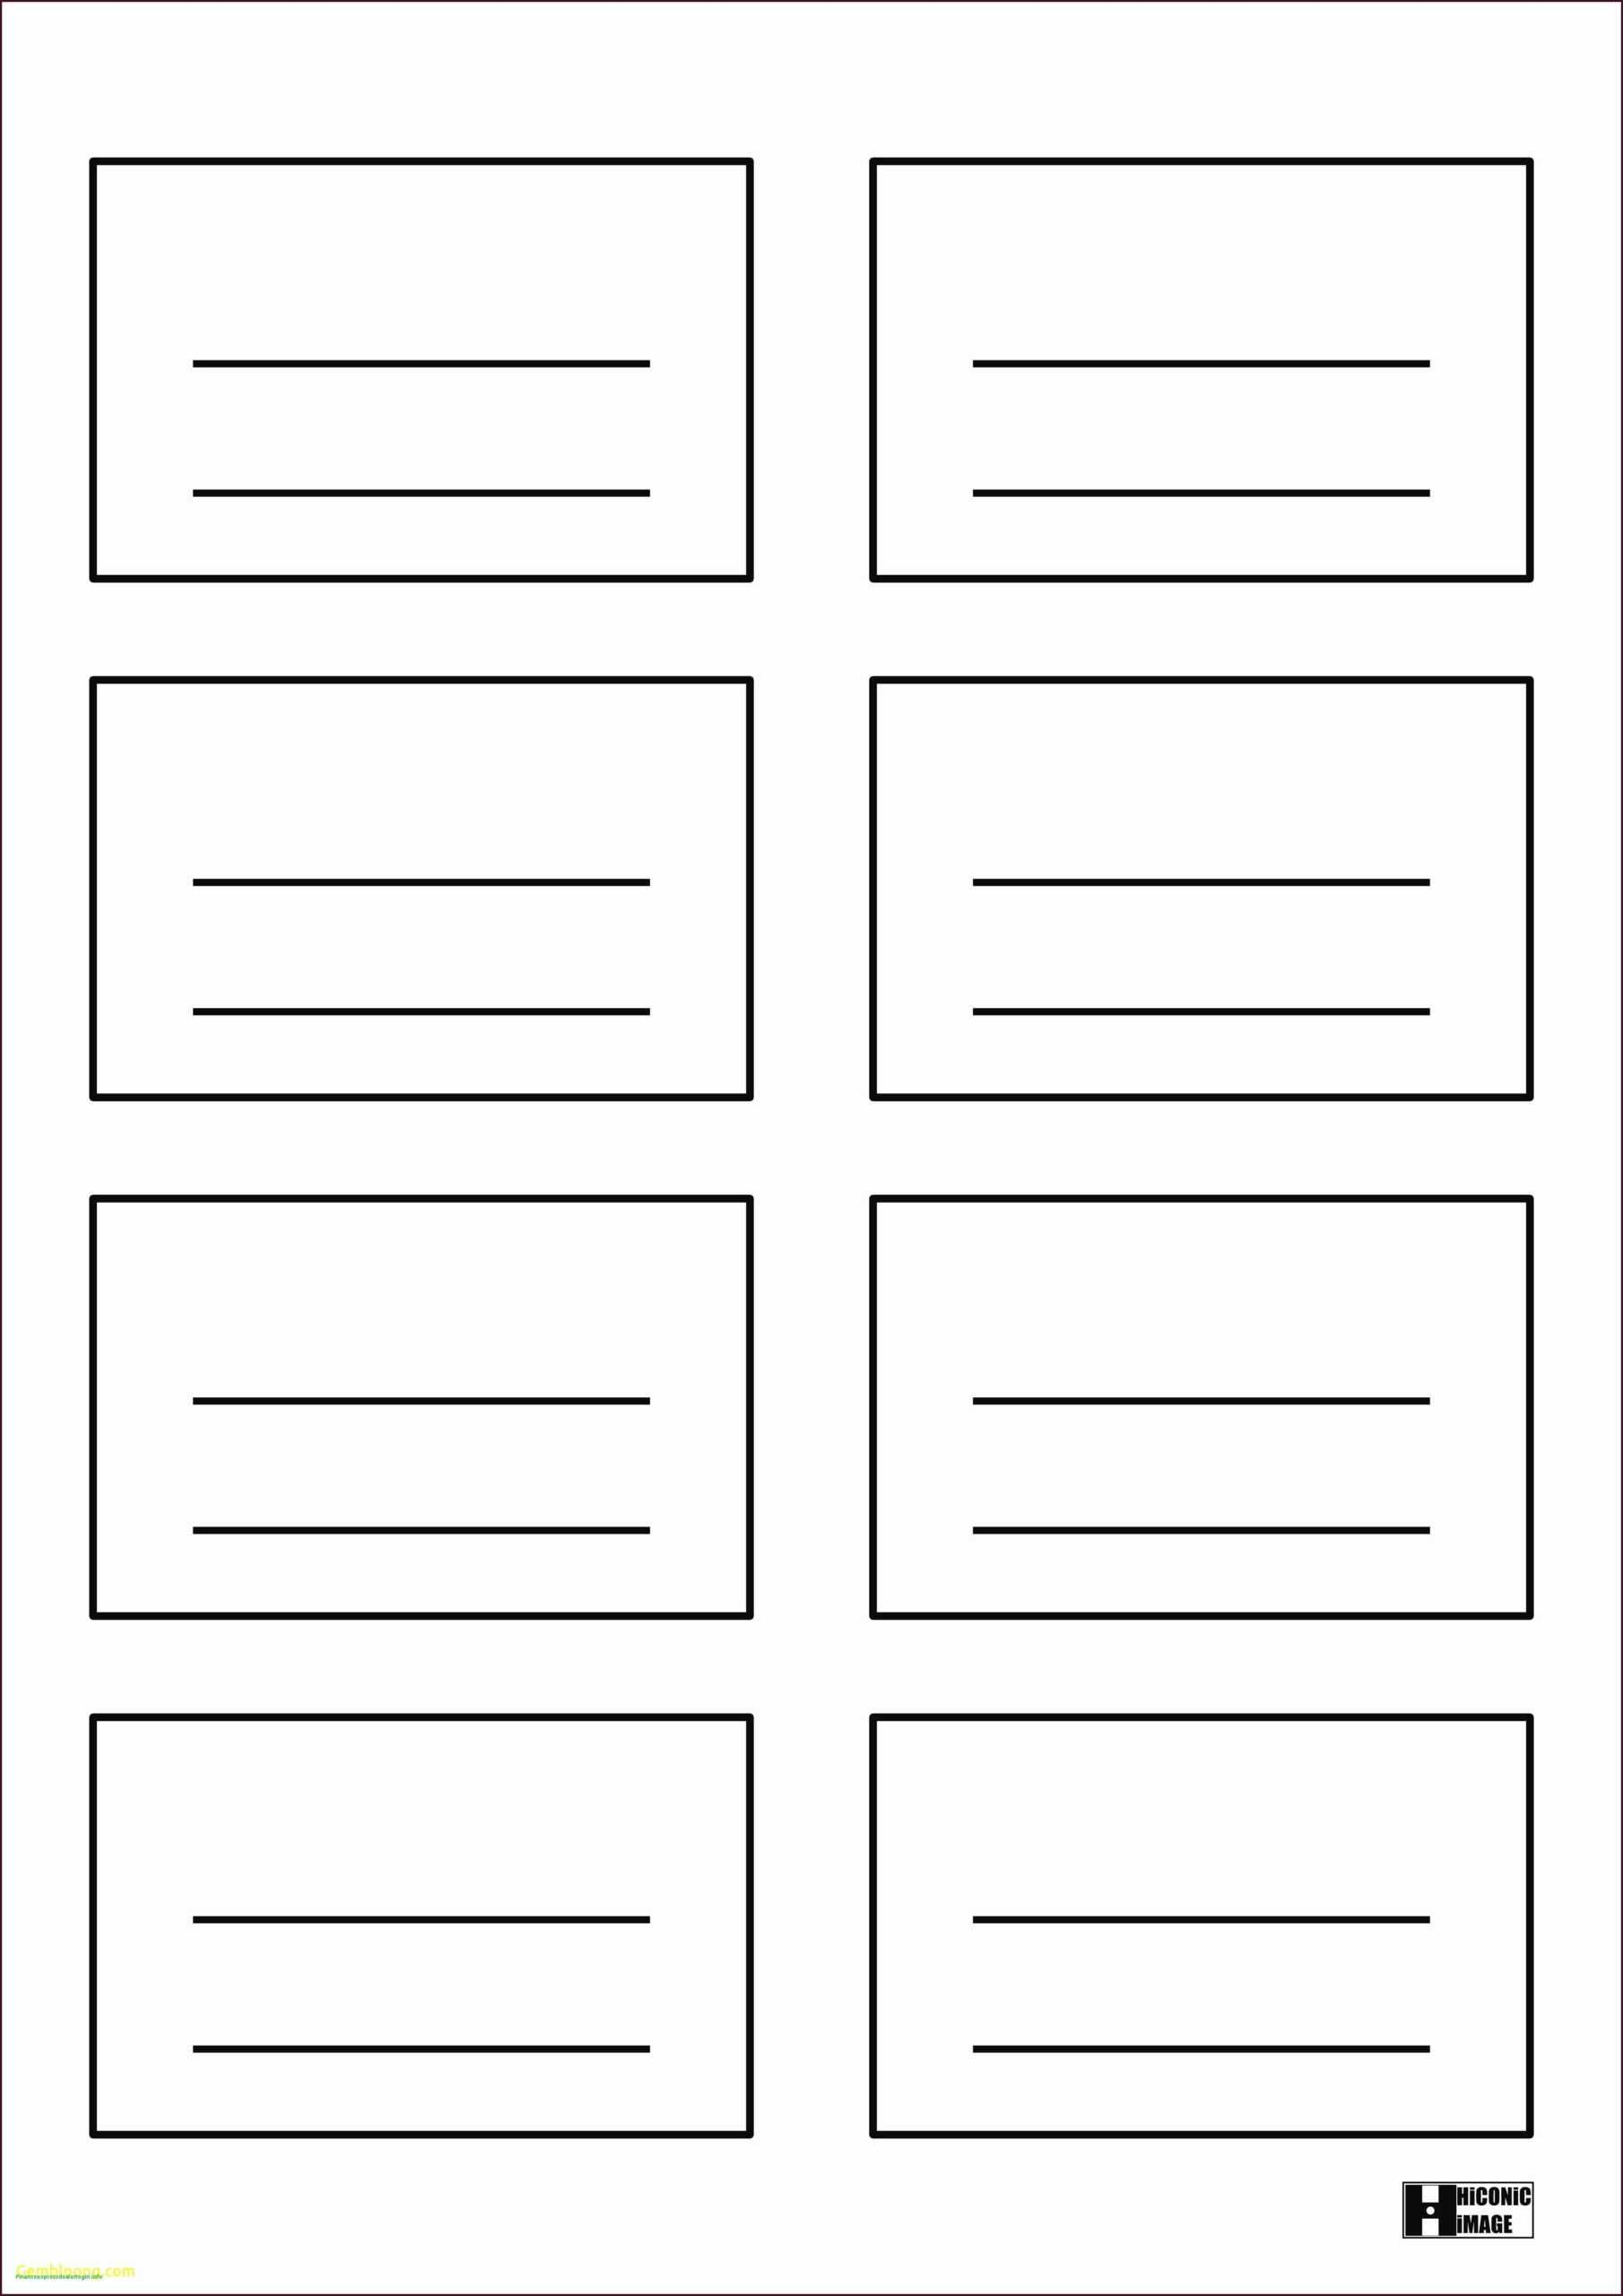 Inspirational 7 5×7 Recipe Card Template Ioayu – Culturatti Pertaining To 4X6 Note Card Template Word